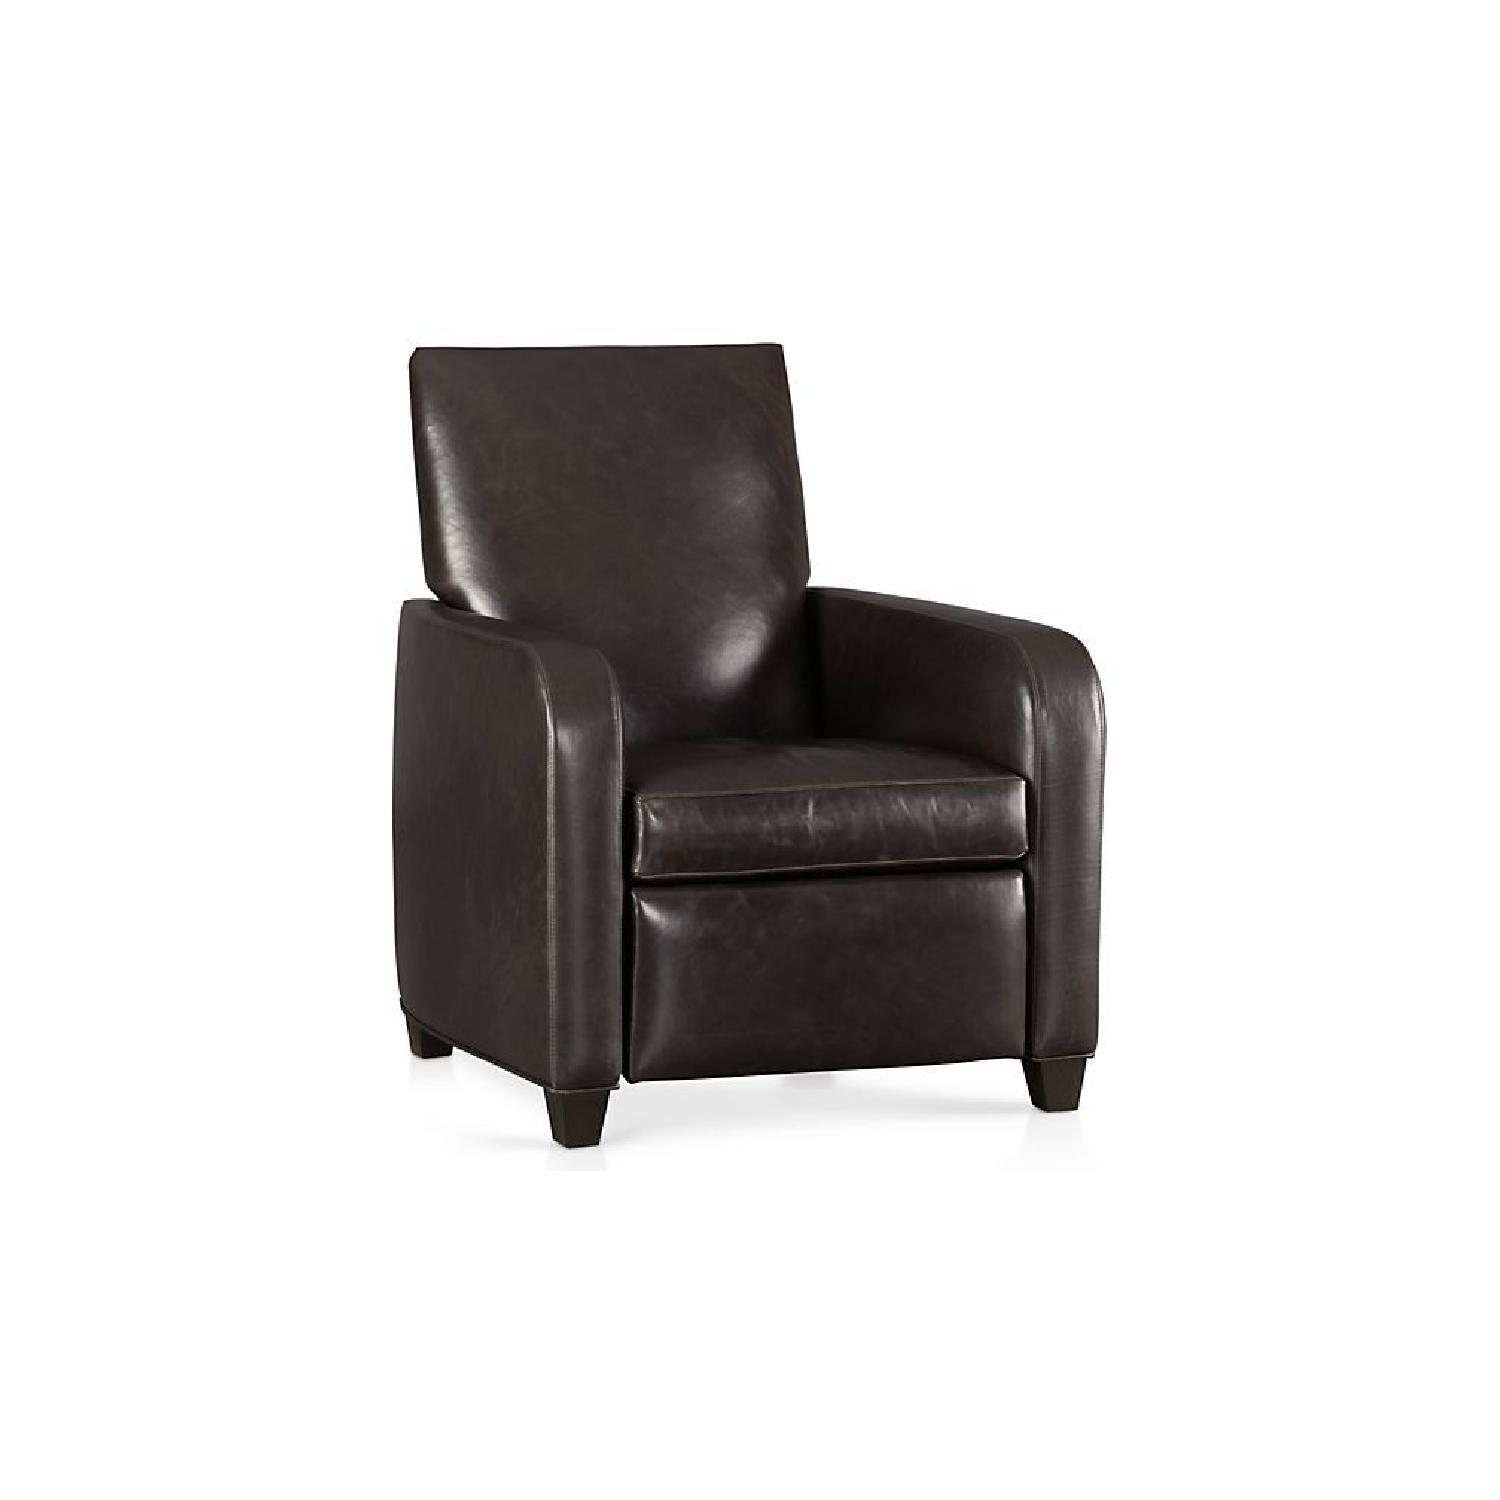 Crate & Barrel Brown Leather Recliner